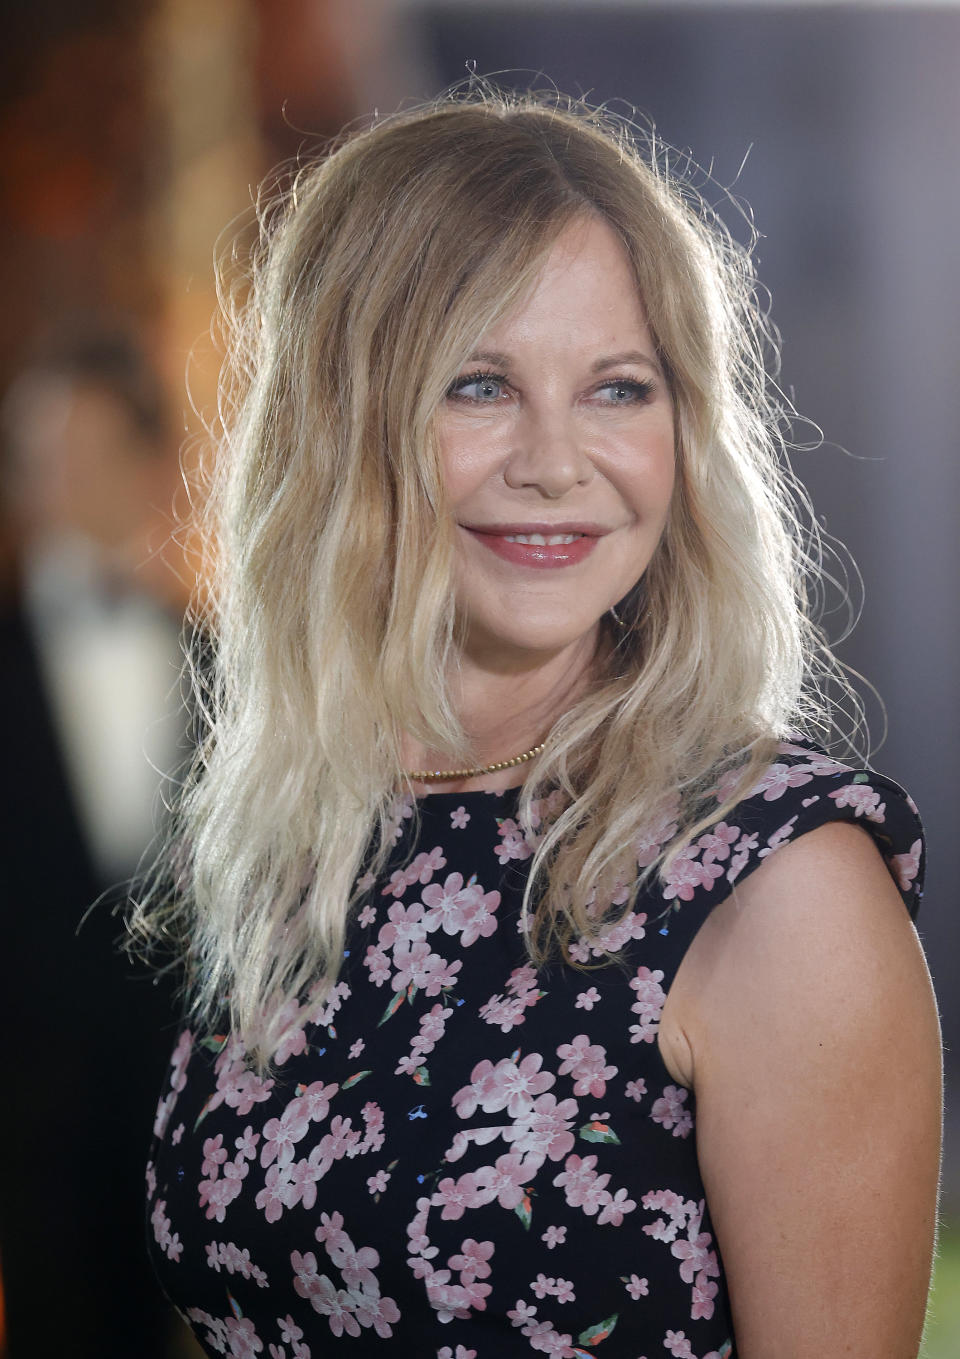 LOS ANGELES, CALIFORNIA - SEPTEMBER 25: Meg Ryan attends The Academy Museum of Motion Pictures Opening Gala at The Academy Museum of Motion Pictures on September 25, 2021 in Los Angeles, California. (Photo by Frazer Harrison/Getty Images)